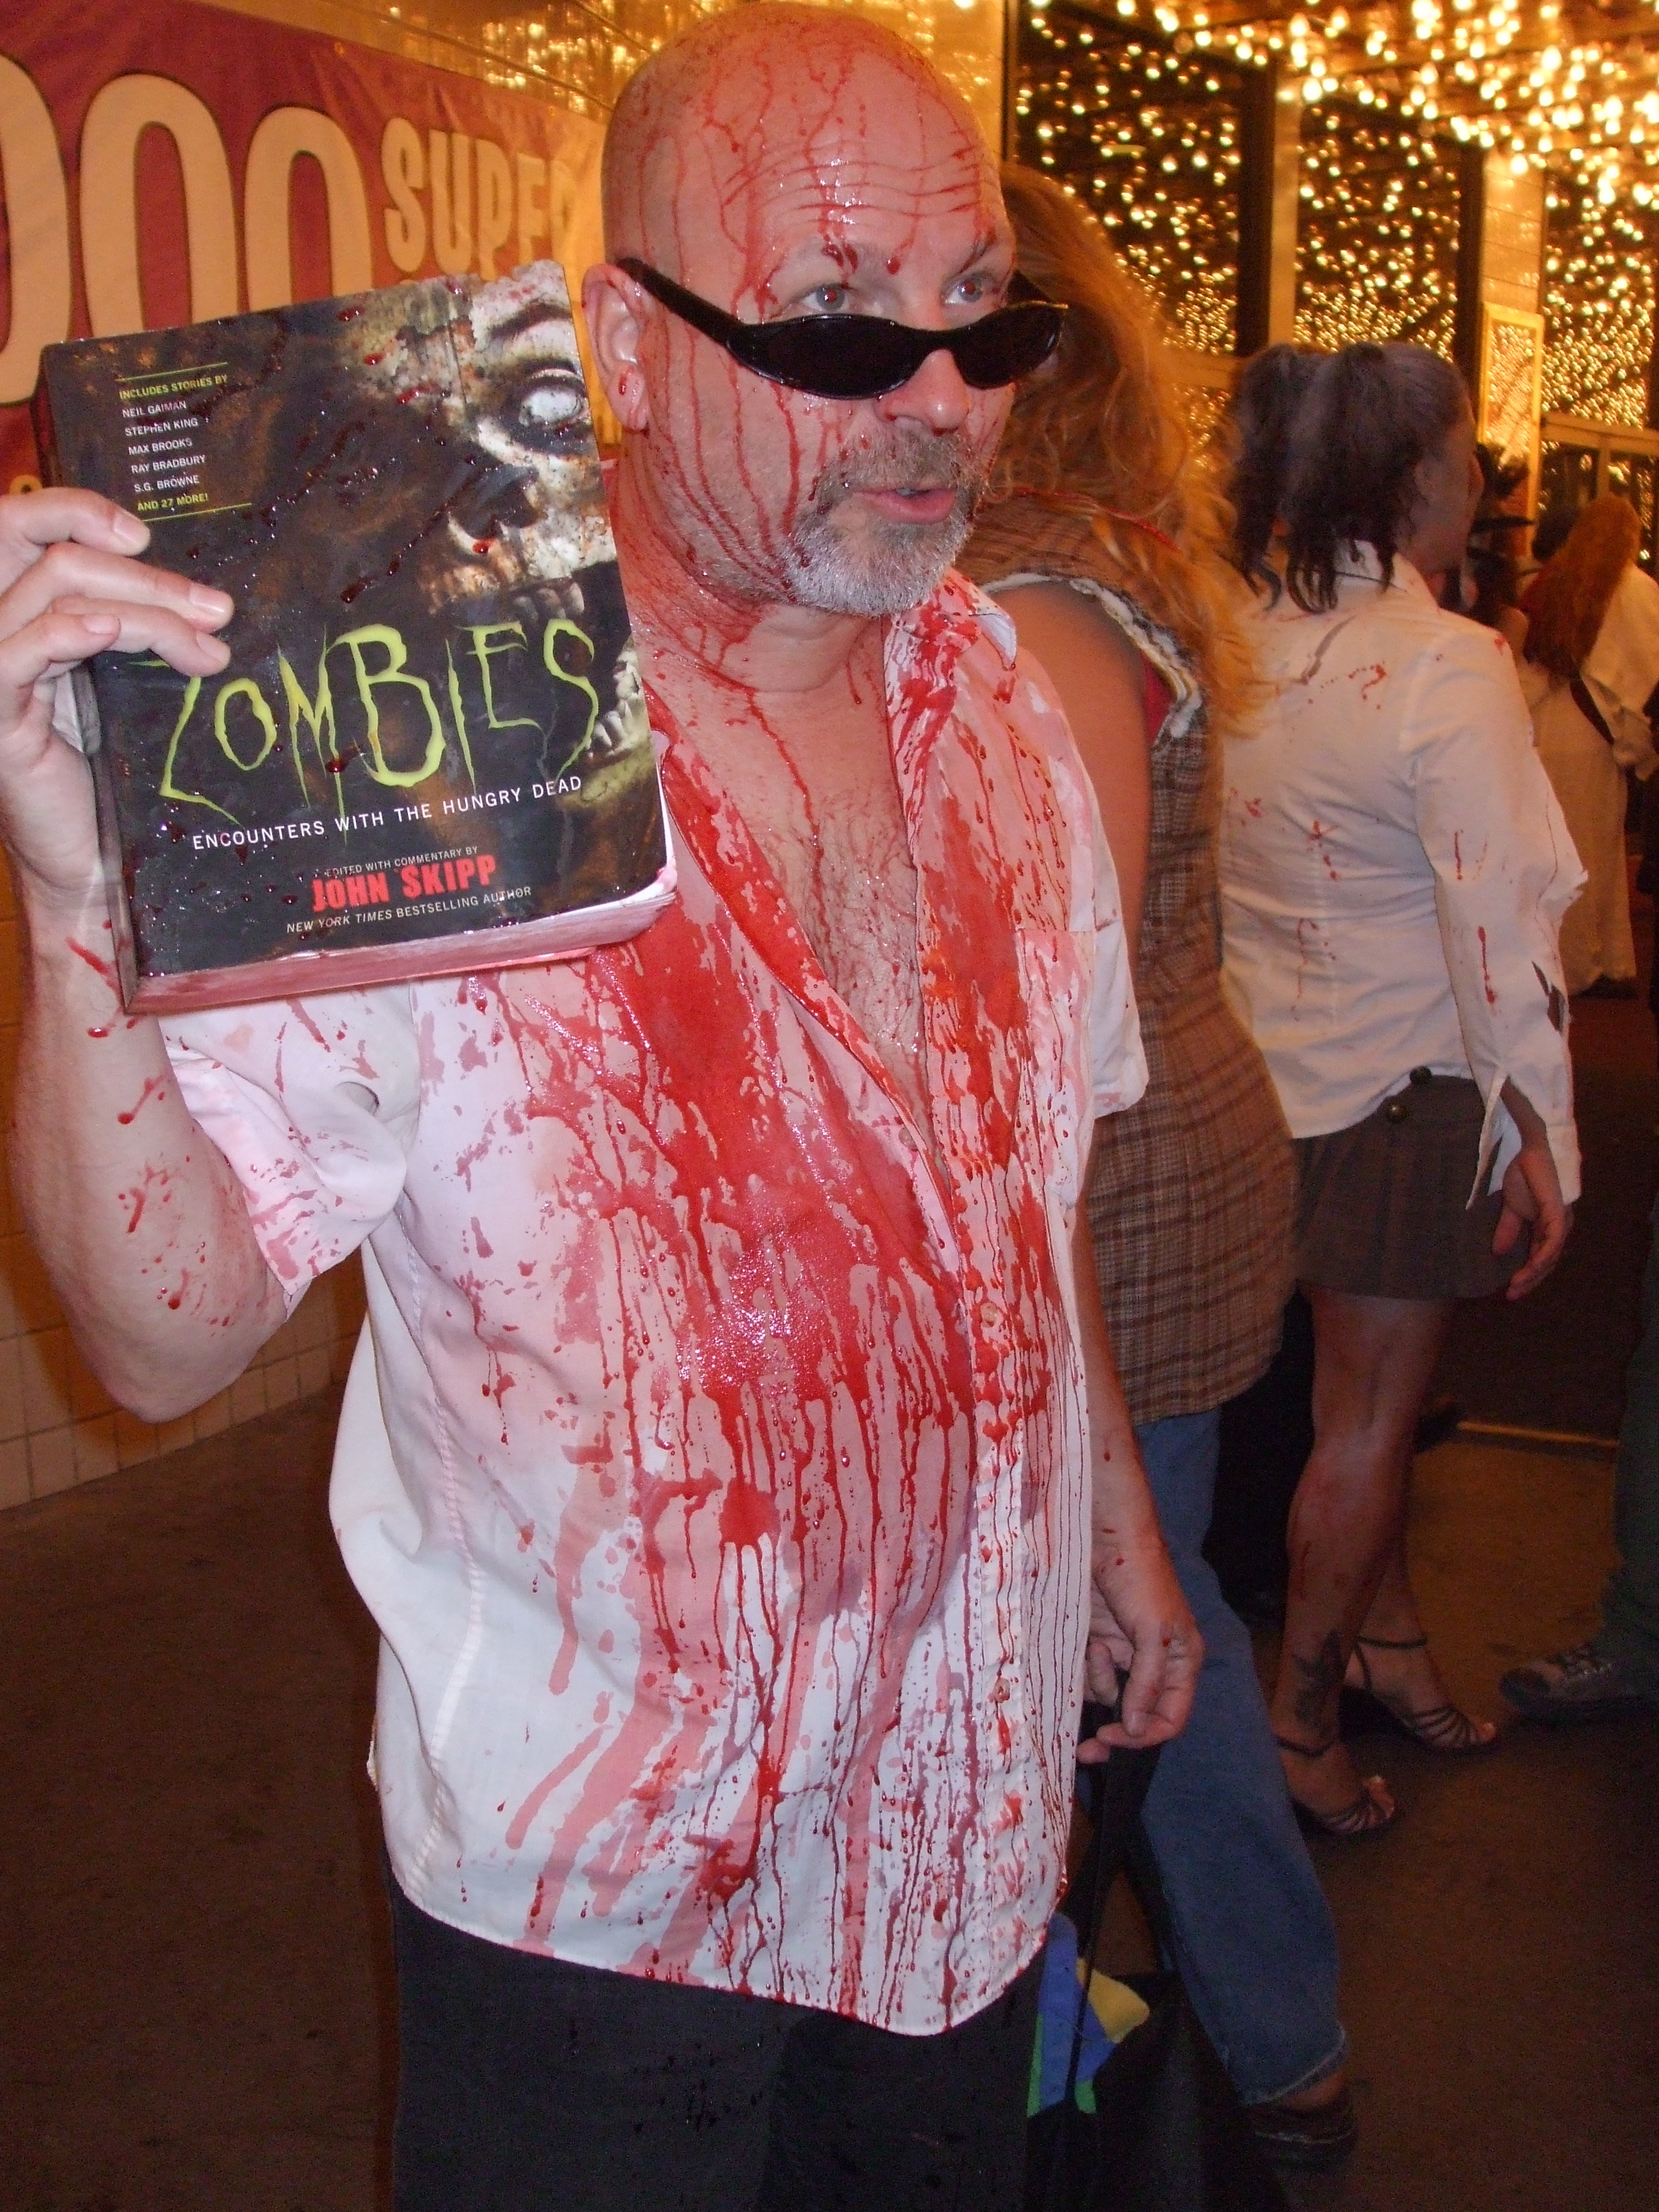 John Skipp and Zombies